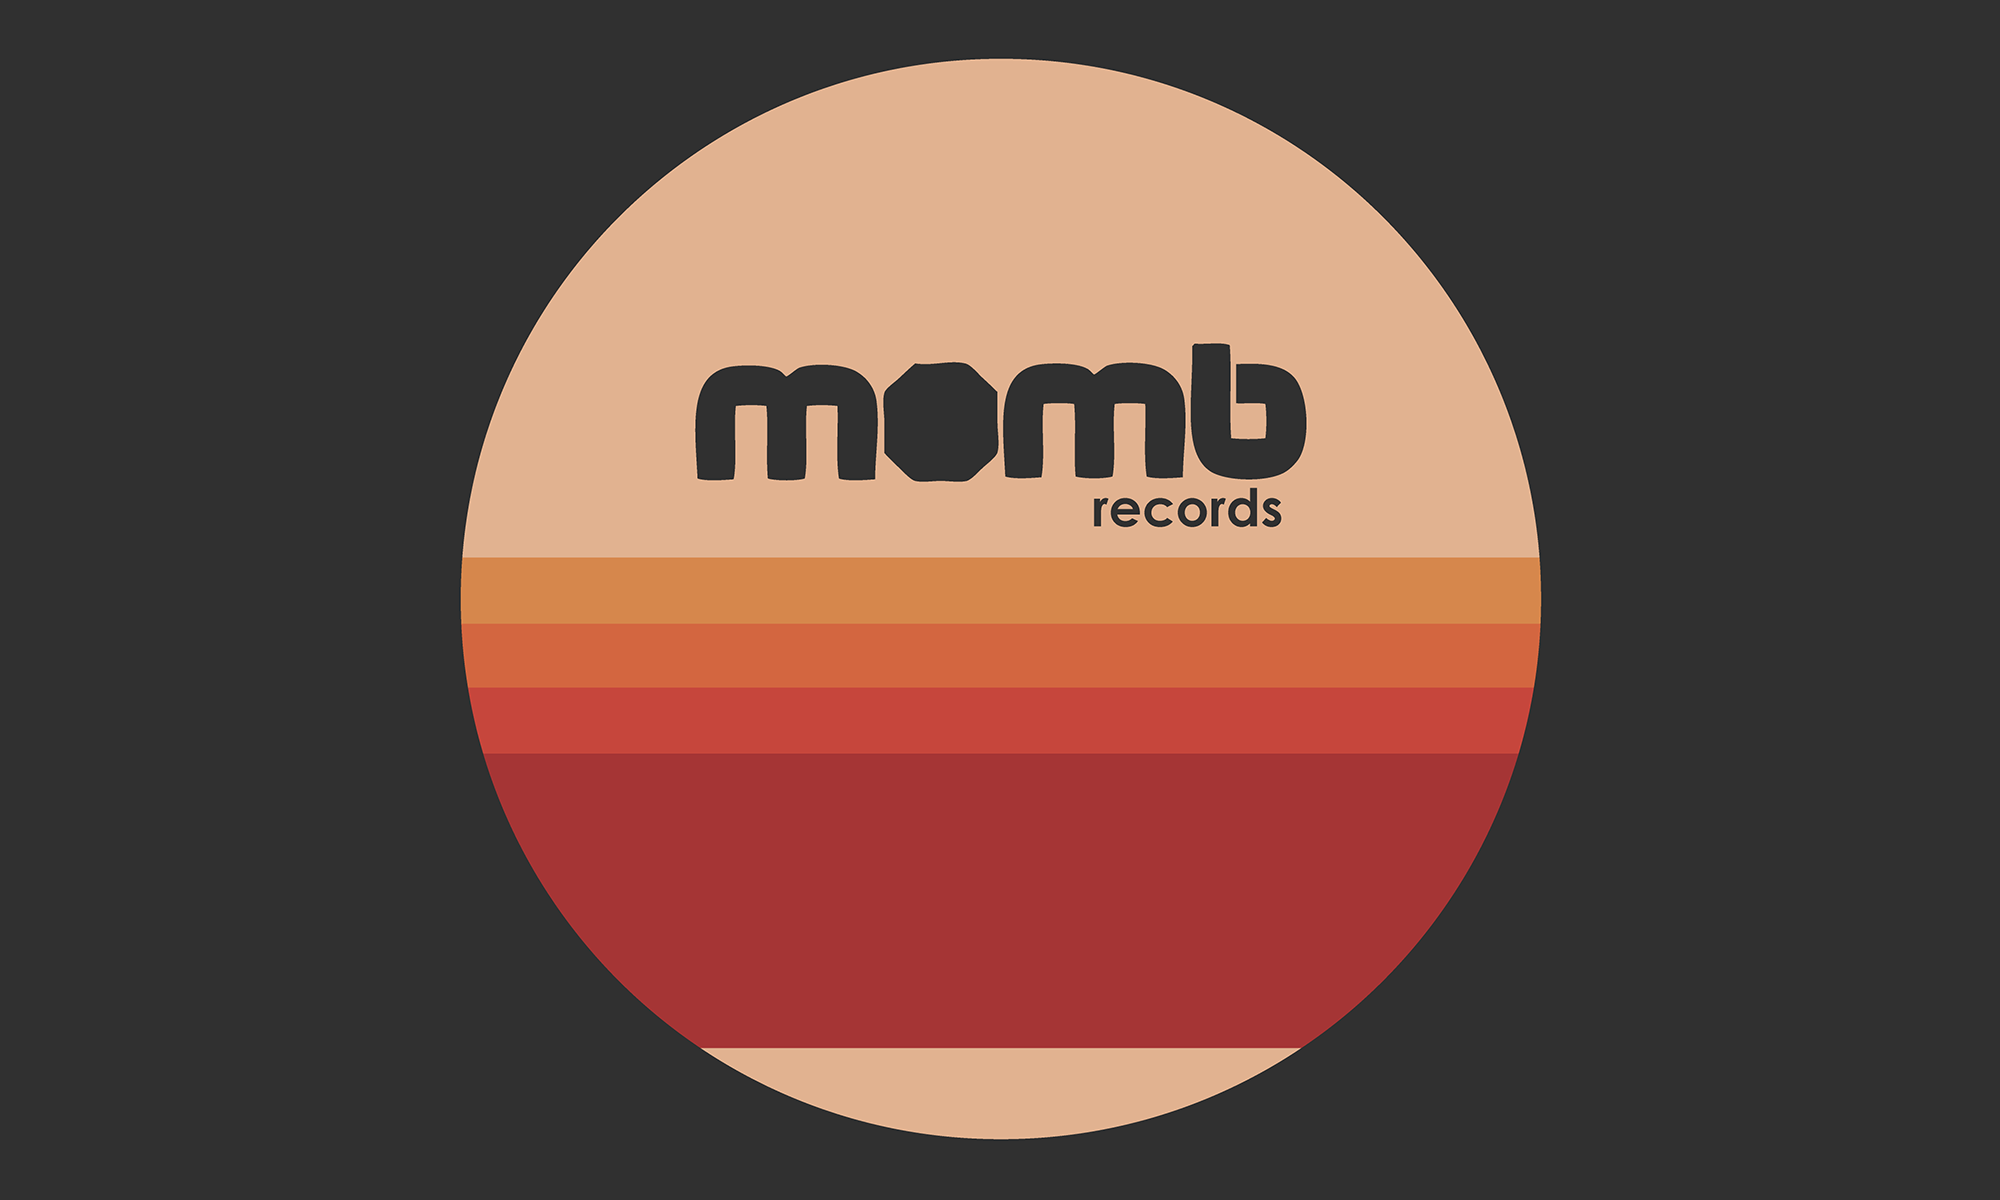 Momb Records